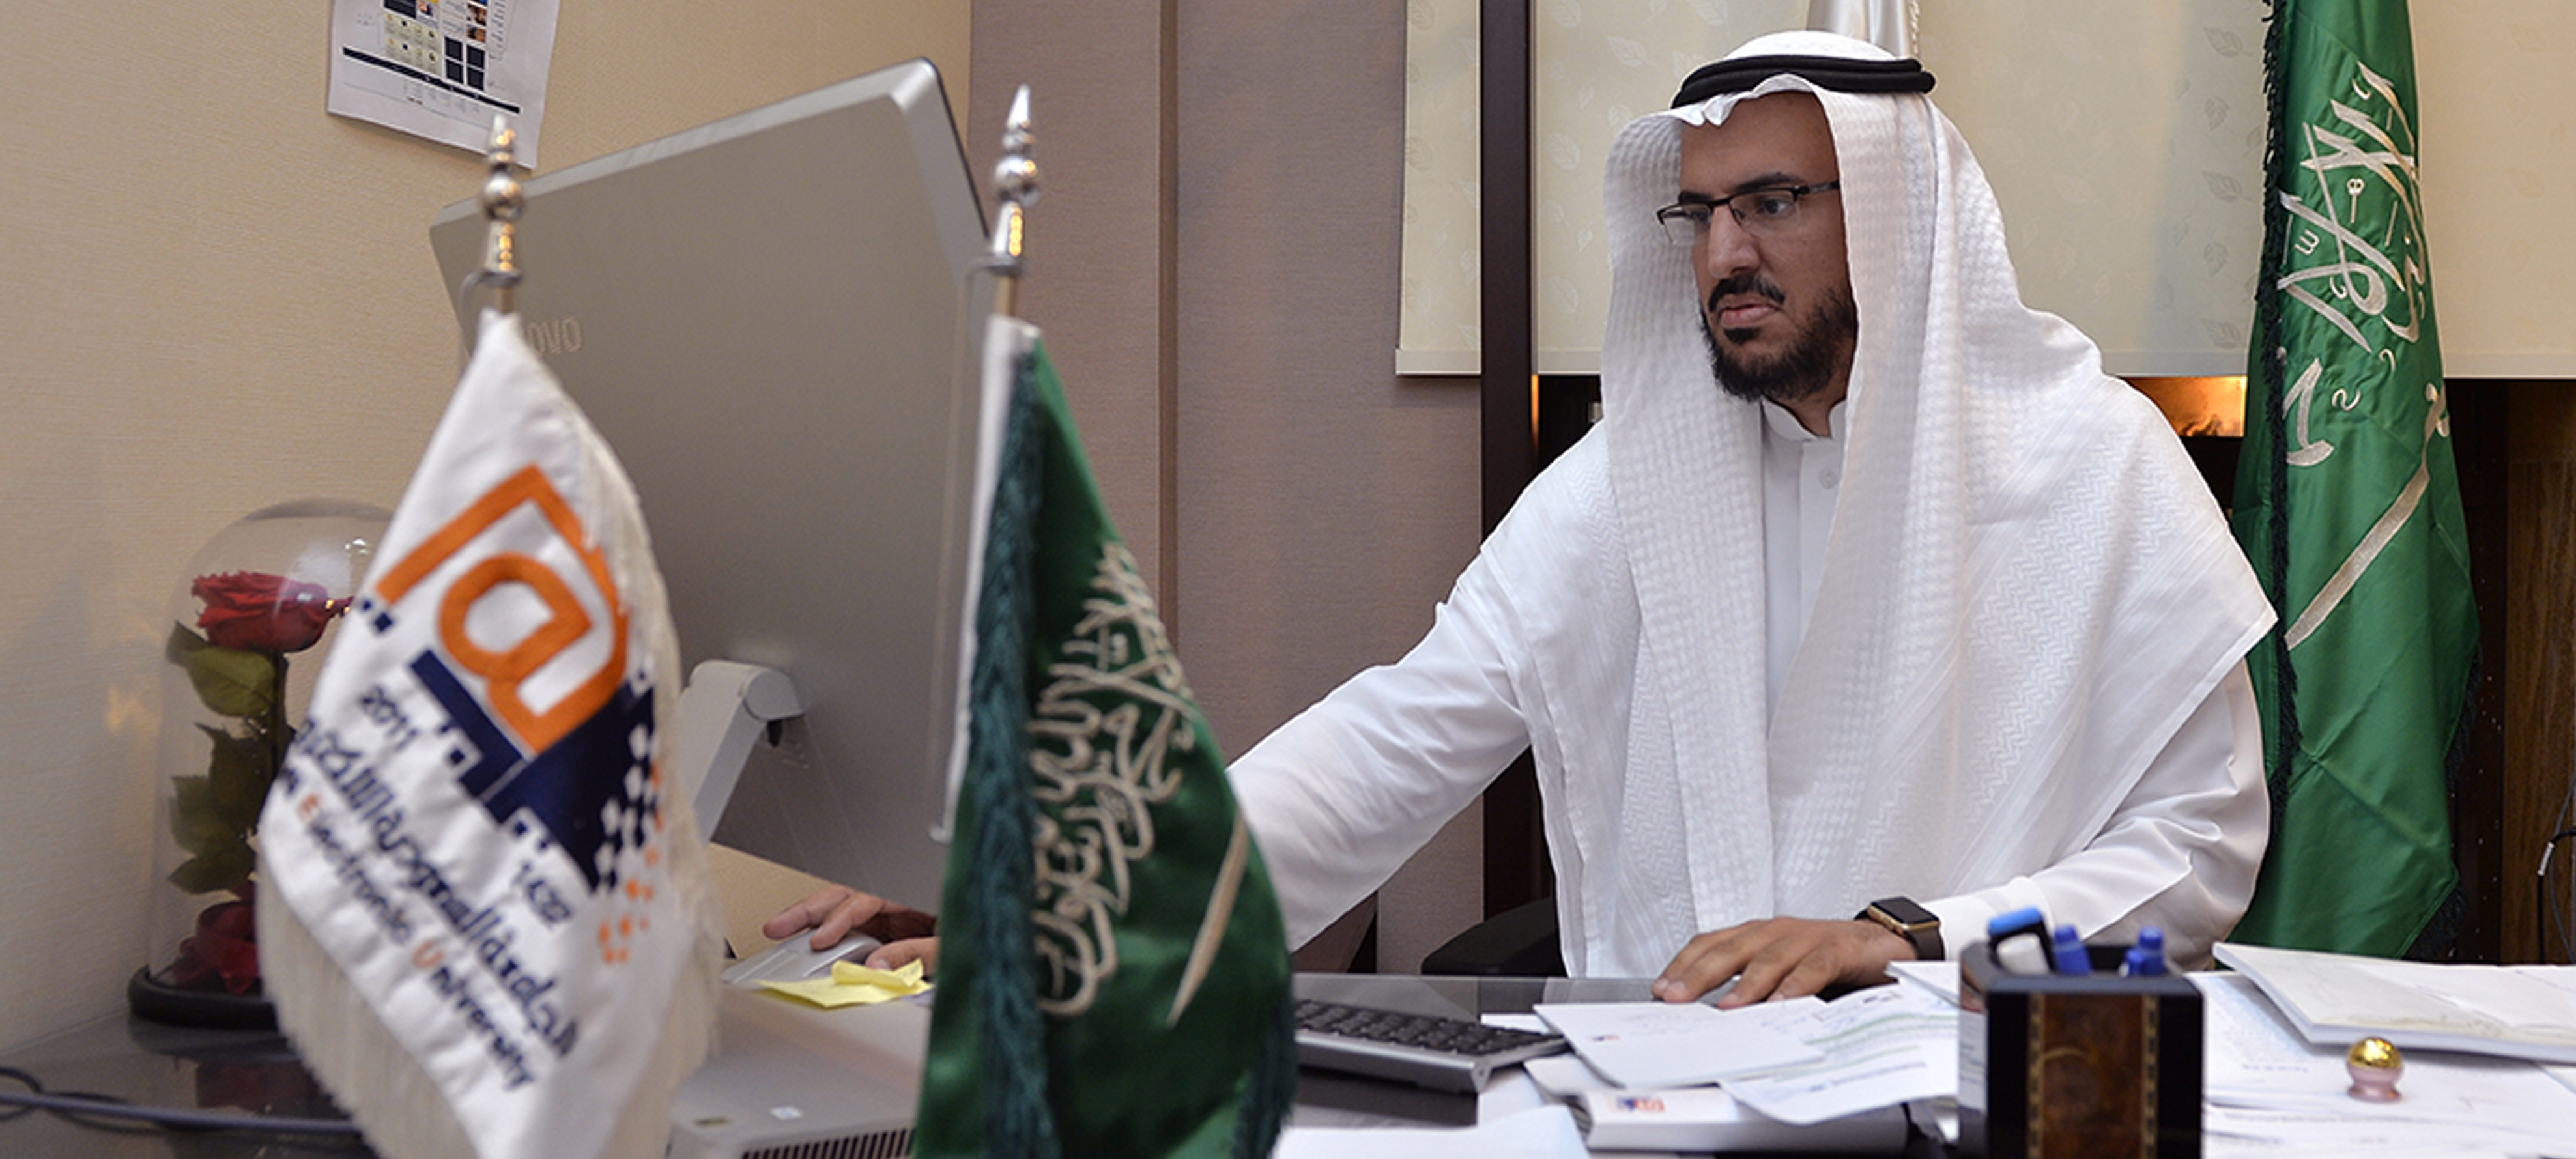 Saleh Alsalamah, Blackboard Administrator at Saudi Electronic University. Photos by: AFP Abdallah Al-Shaikhi.